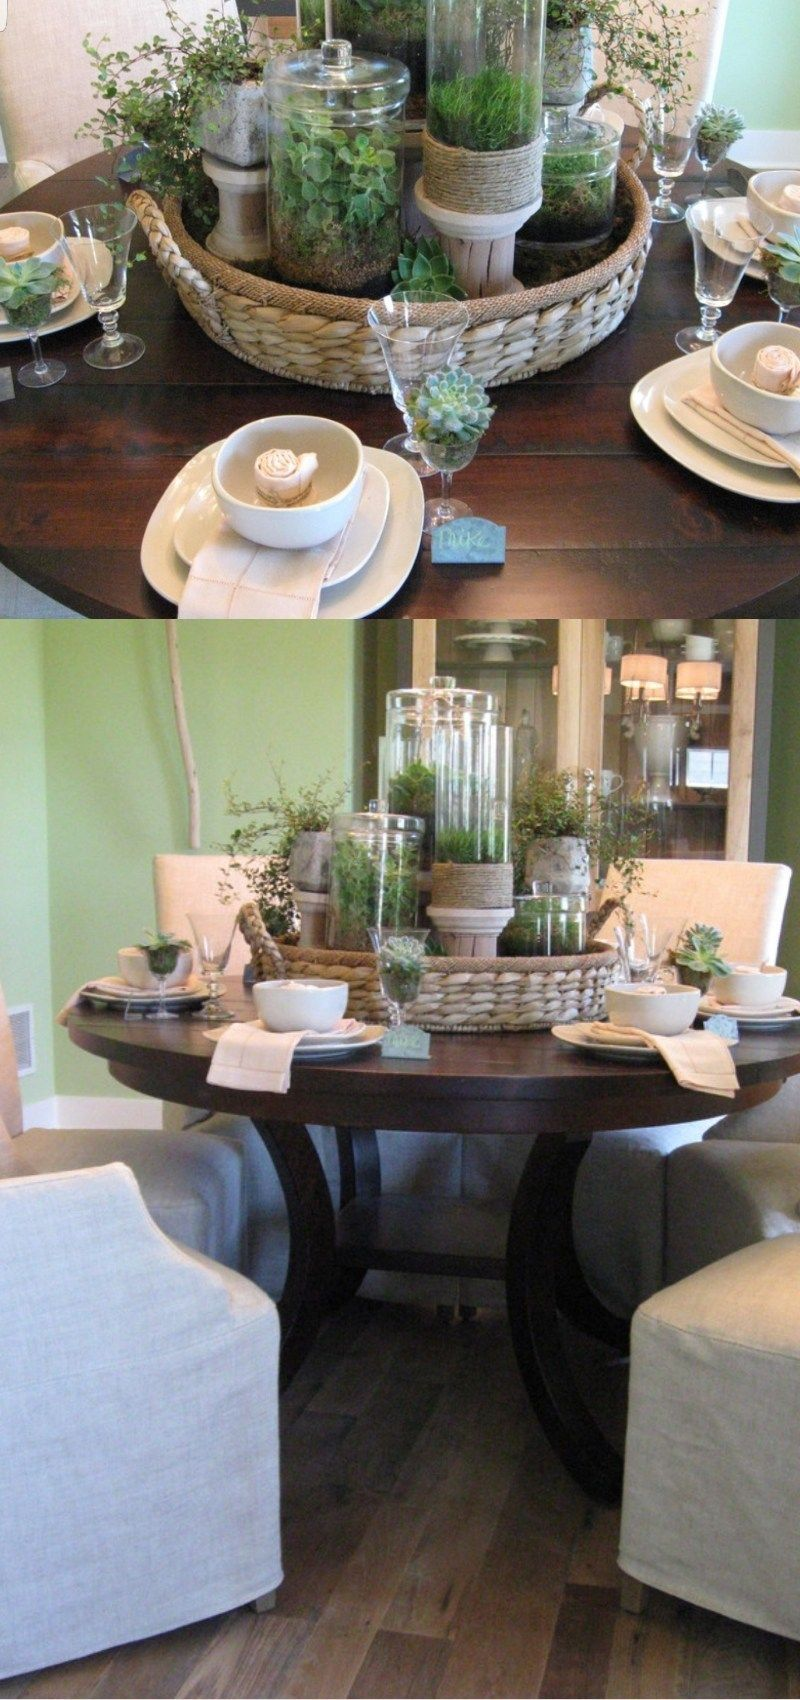 Simple Table Setting Ideas Dining Table Centerpiece Dining Table Decor Modern Simple Dining Table